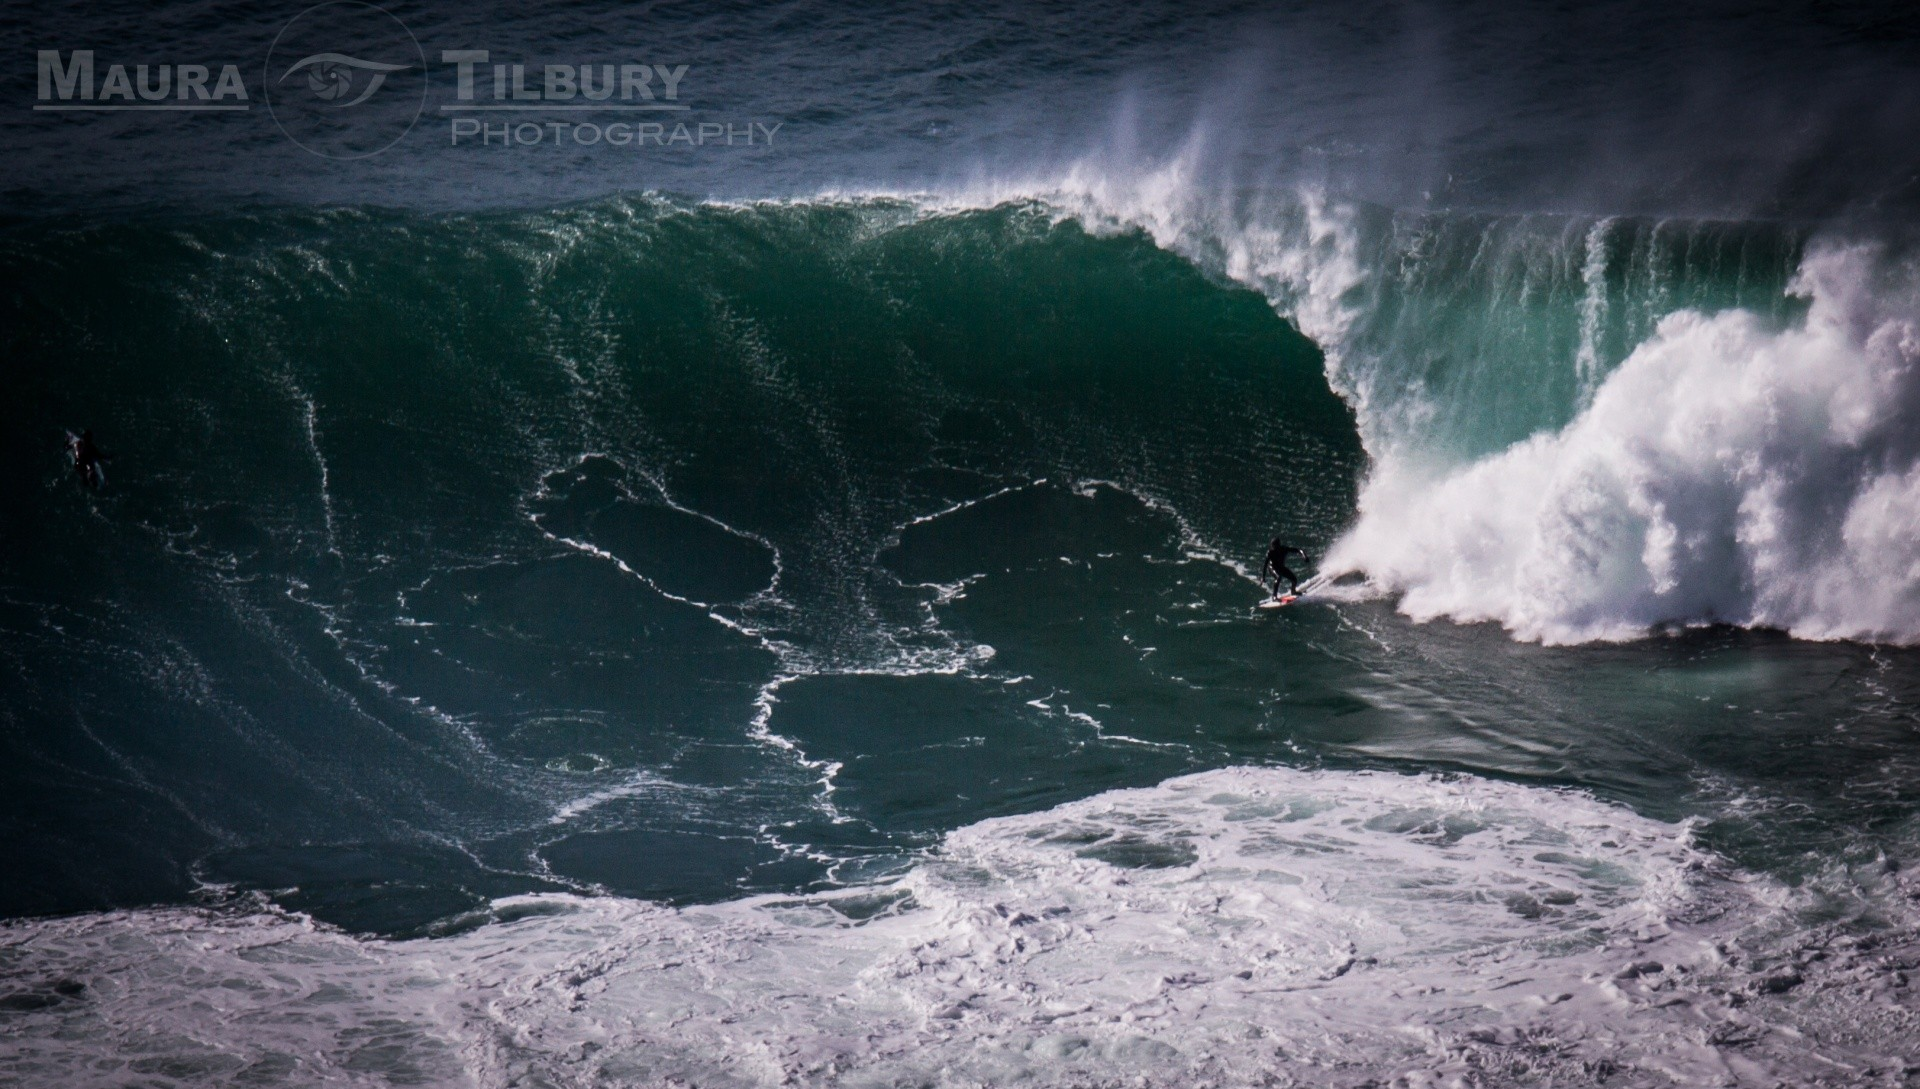 Maura Tilbury Photography's photo of Lahinch - Beach